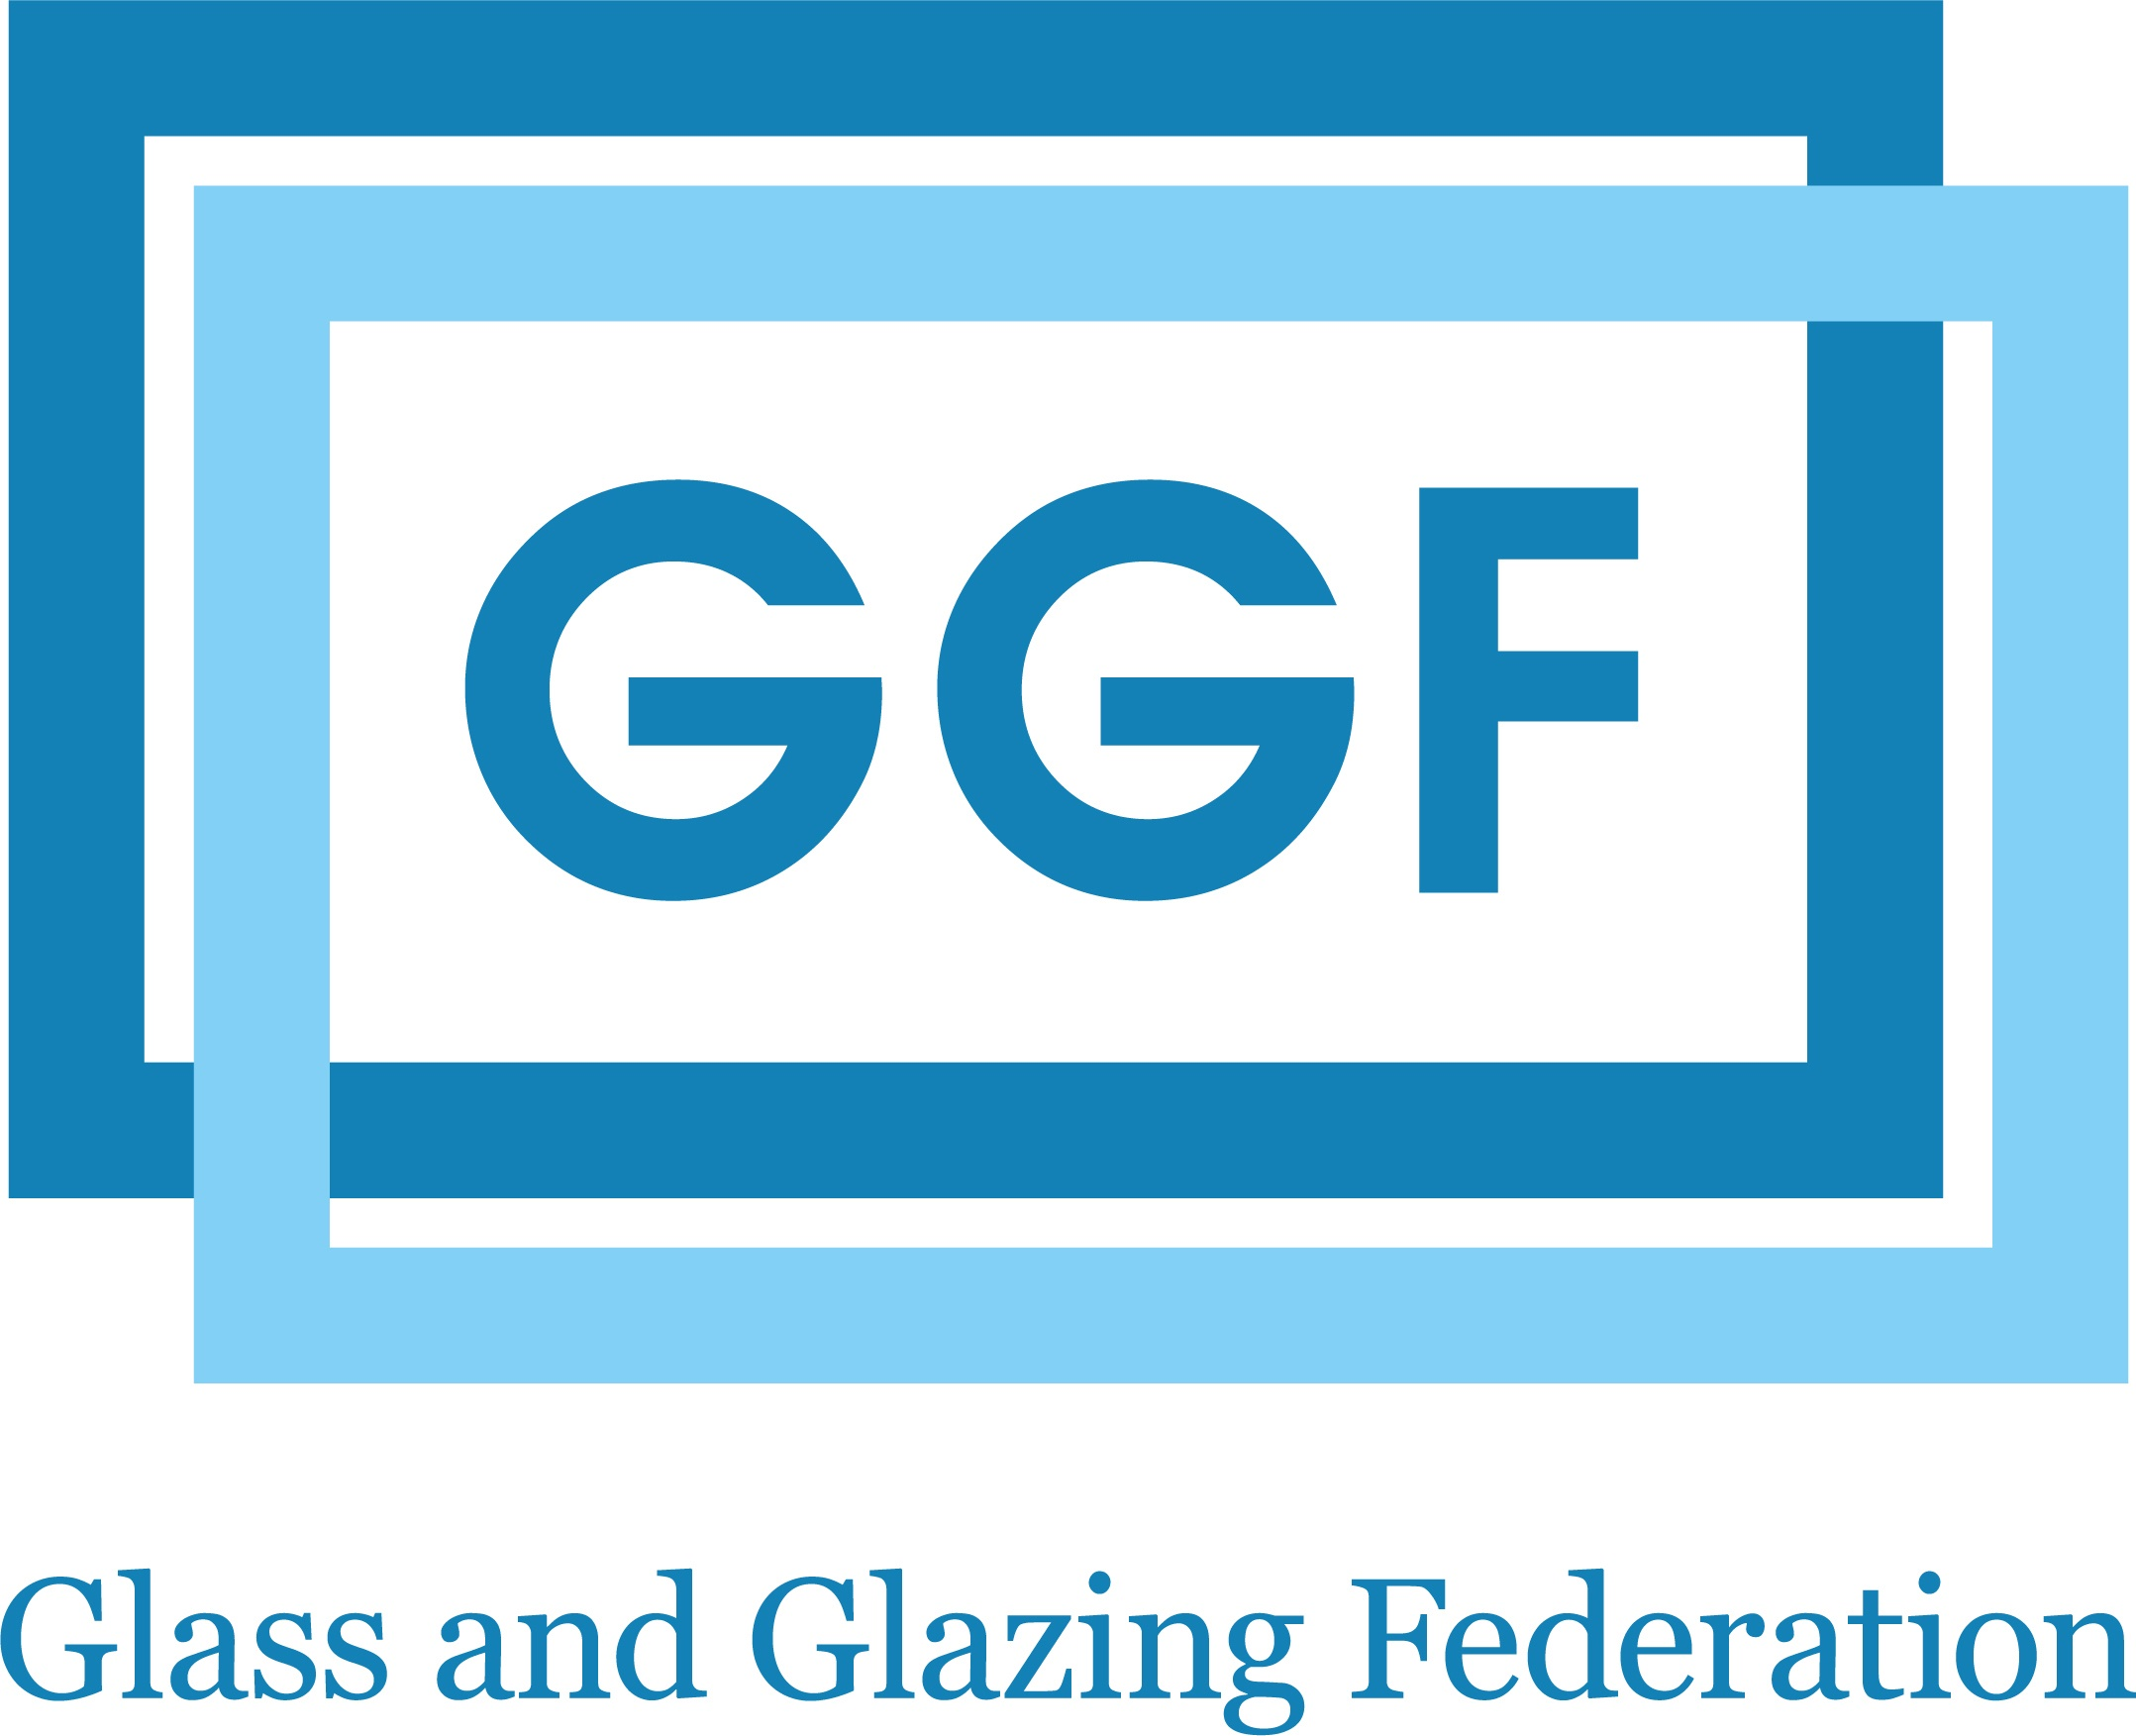 Changes to GGF Group Management Structure